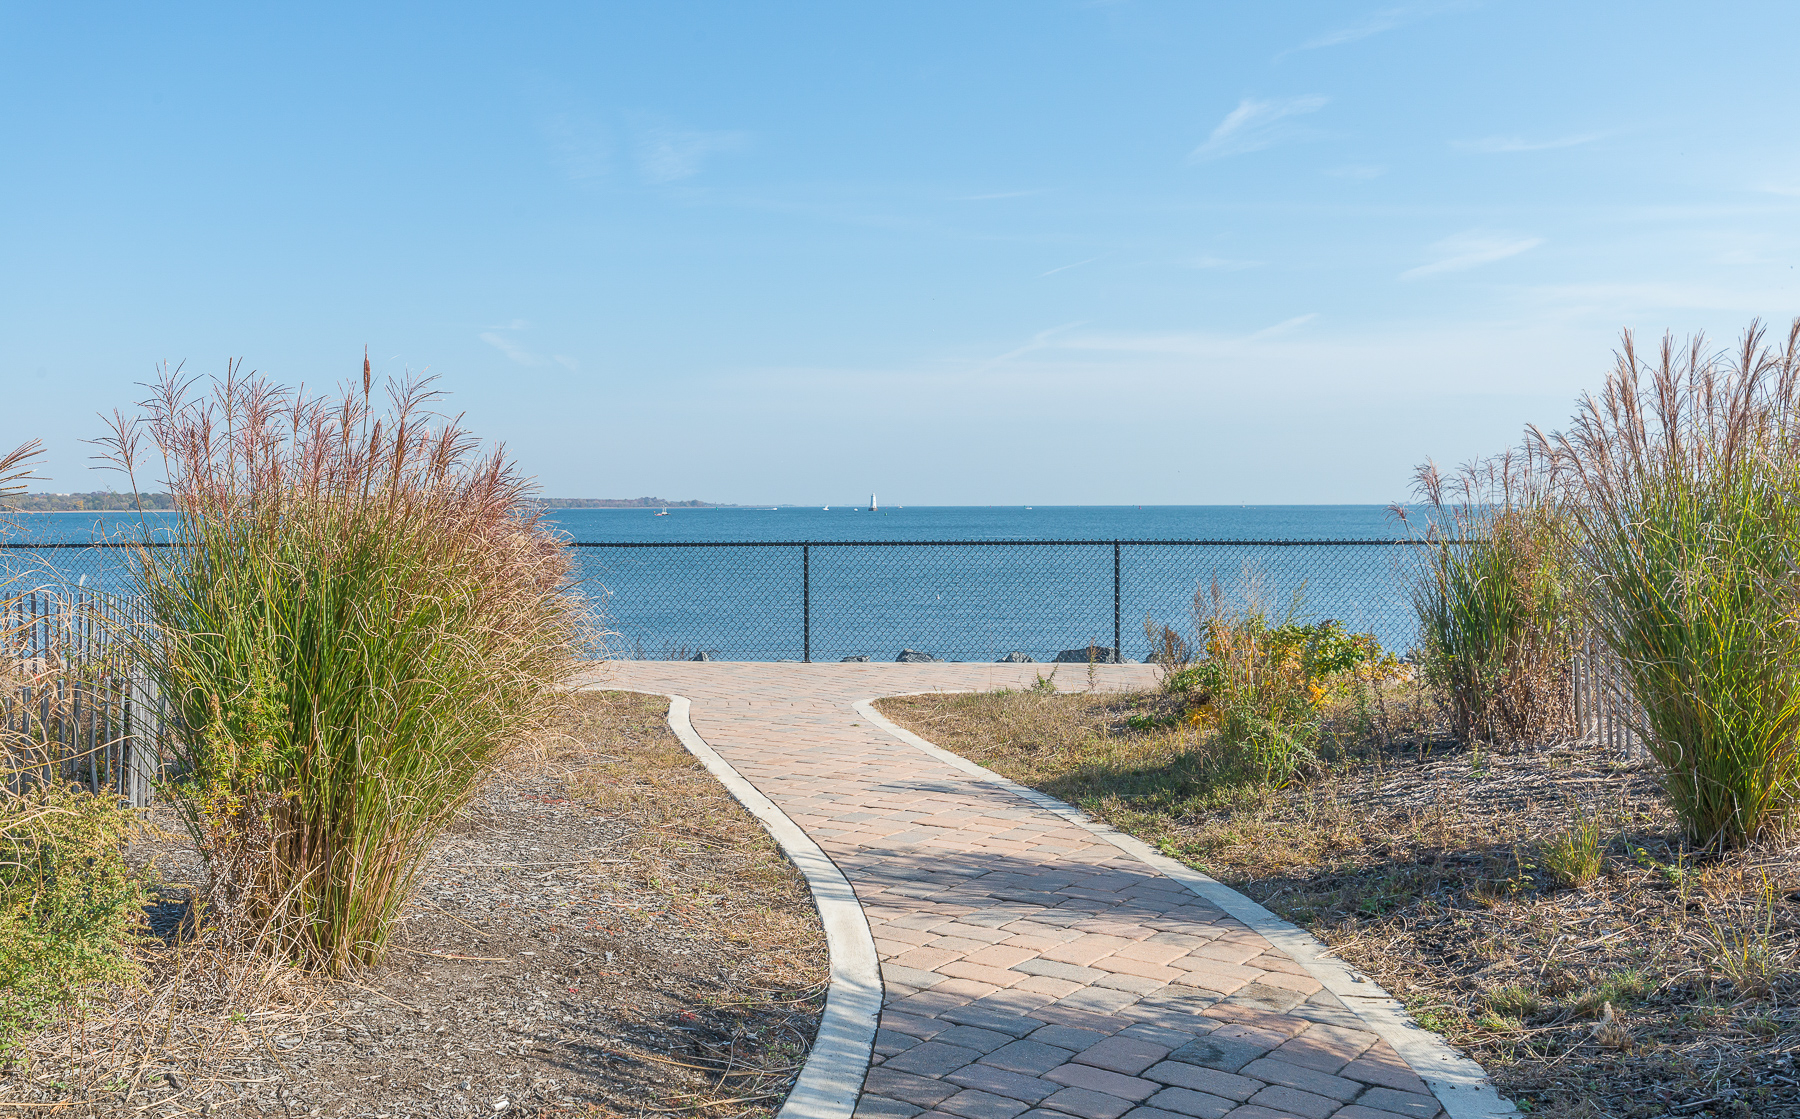 Single Family Home for Sale at Premier Waterfront in Lighthouse Bay 30 South Shore Drive South Amboy, 08879 United States